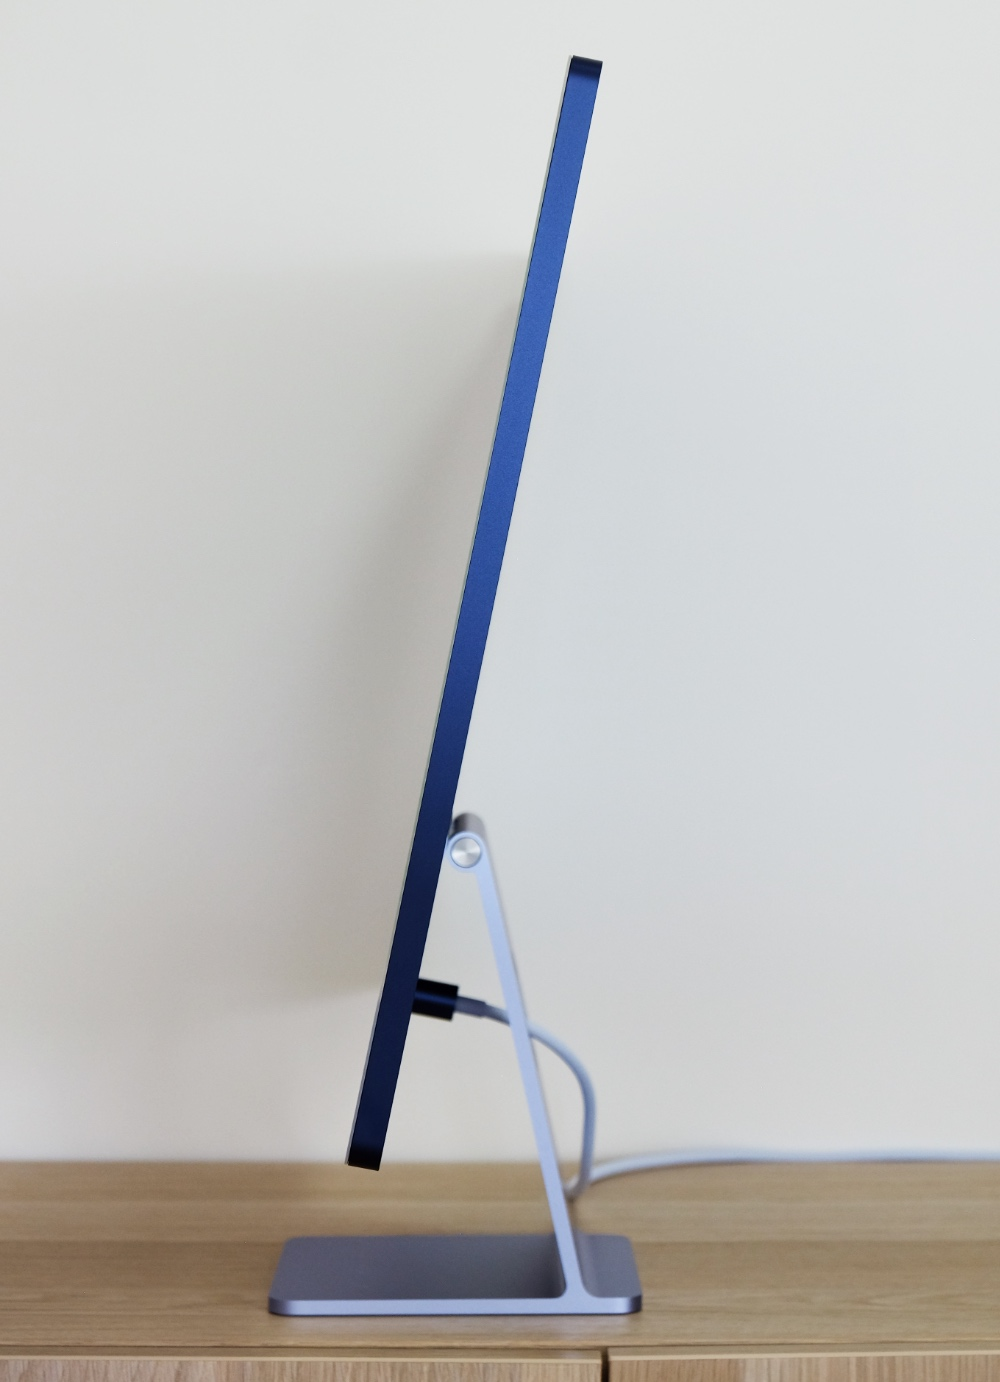 The 24-inch iMac is so thin it looks like an giant iPad attached to a metal stand.